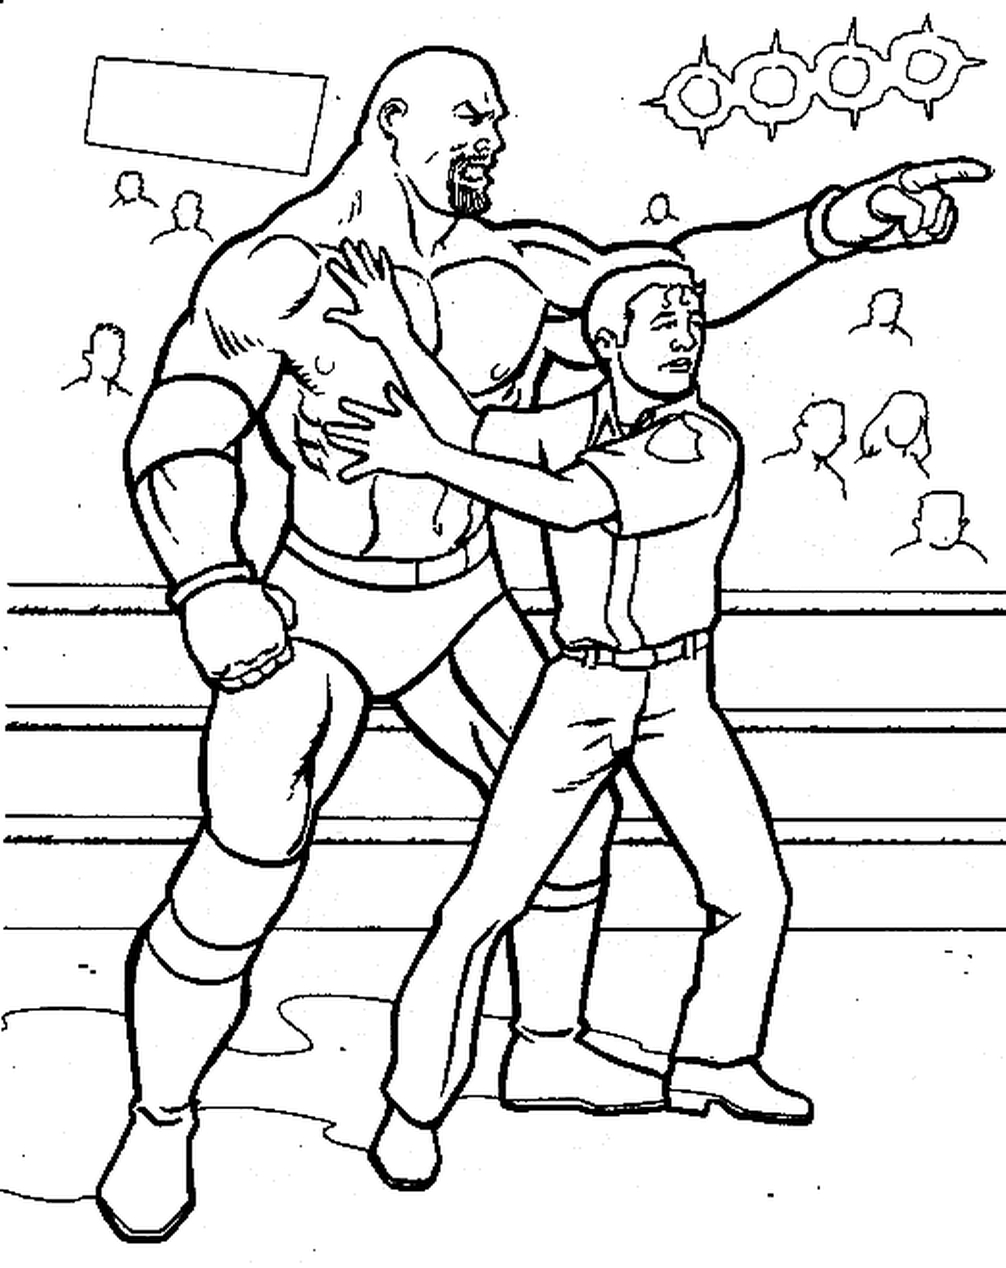 wwe color sheets world wrestling entertainment wwe coloring pages line drawing color sheets wwe